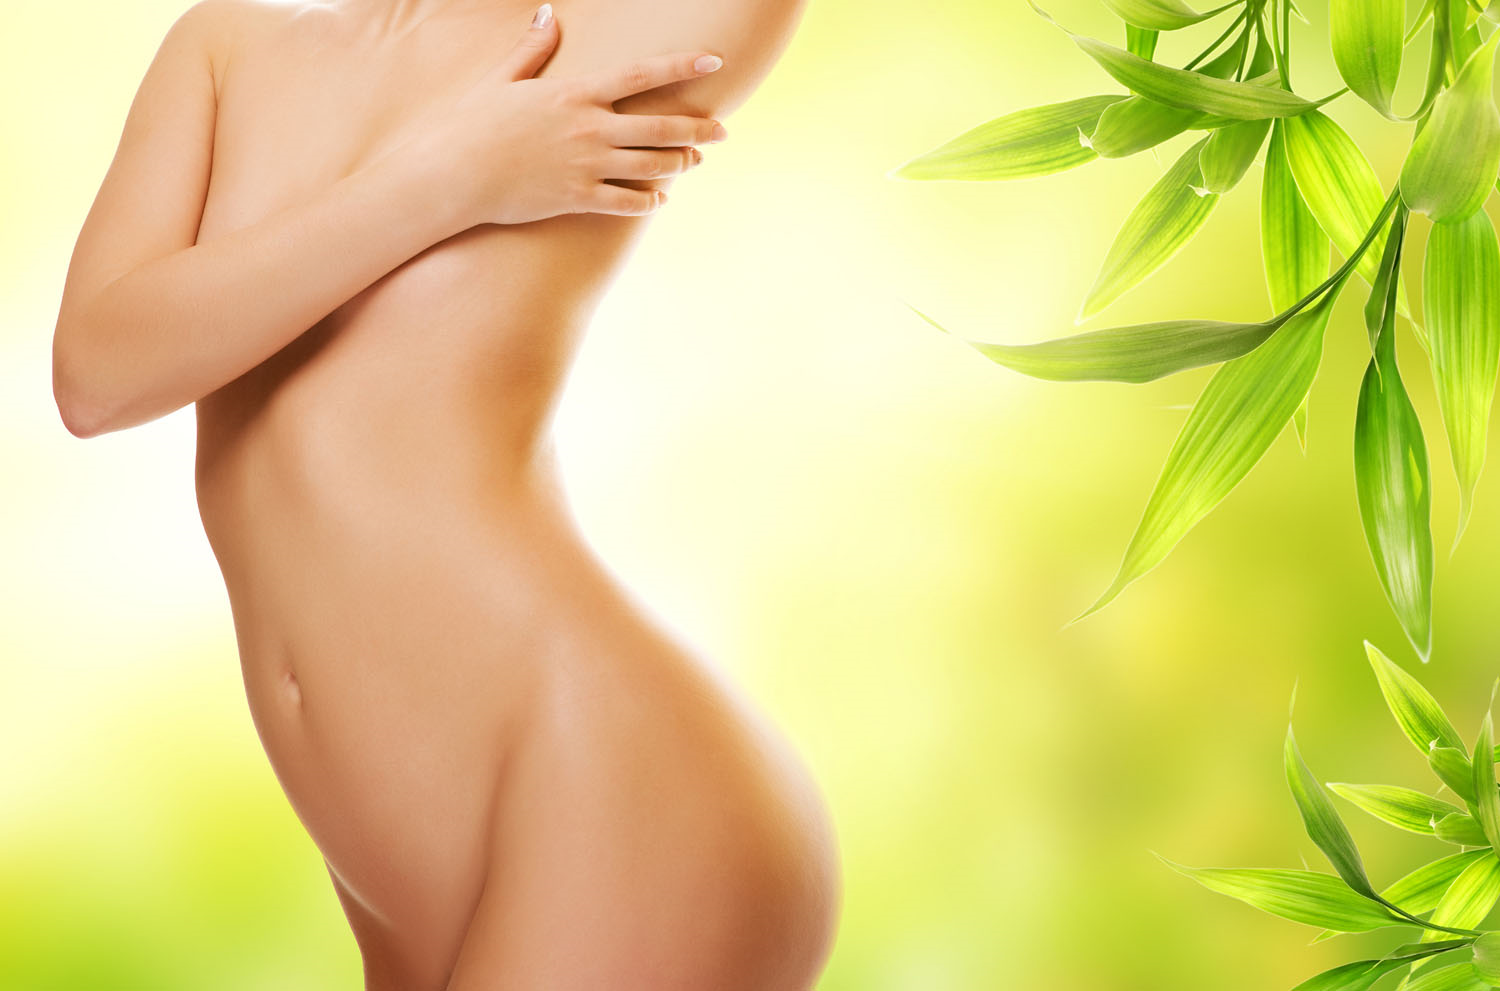 Real electro-mesotherapy with 40x natural active ingredients in high concentrations